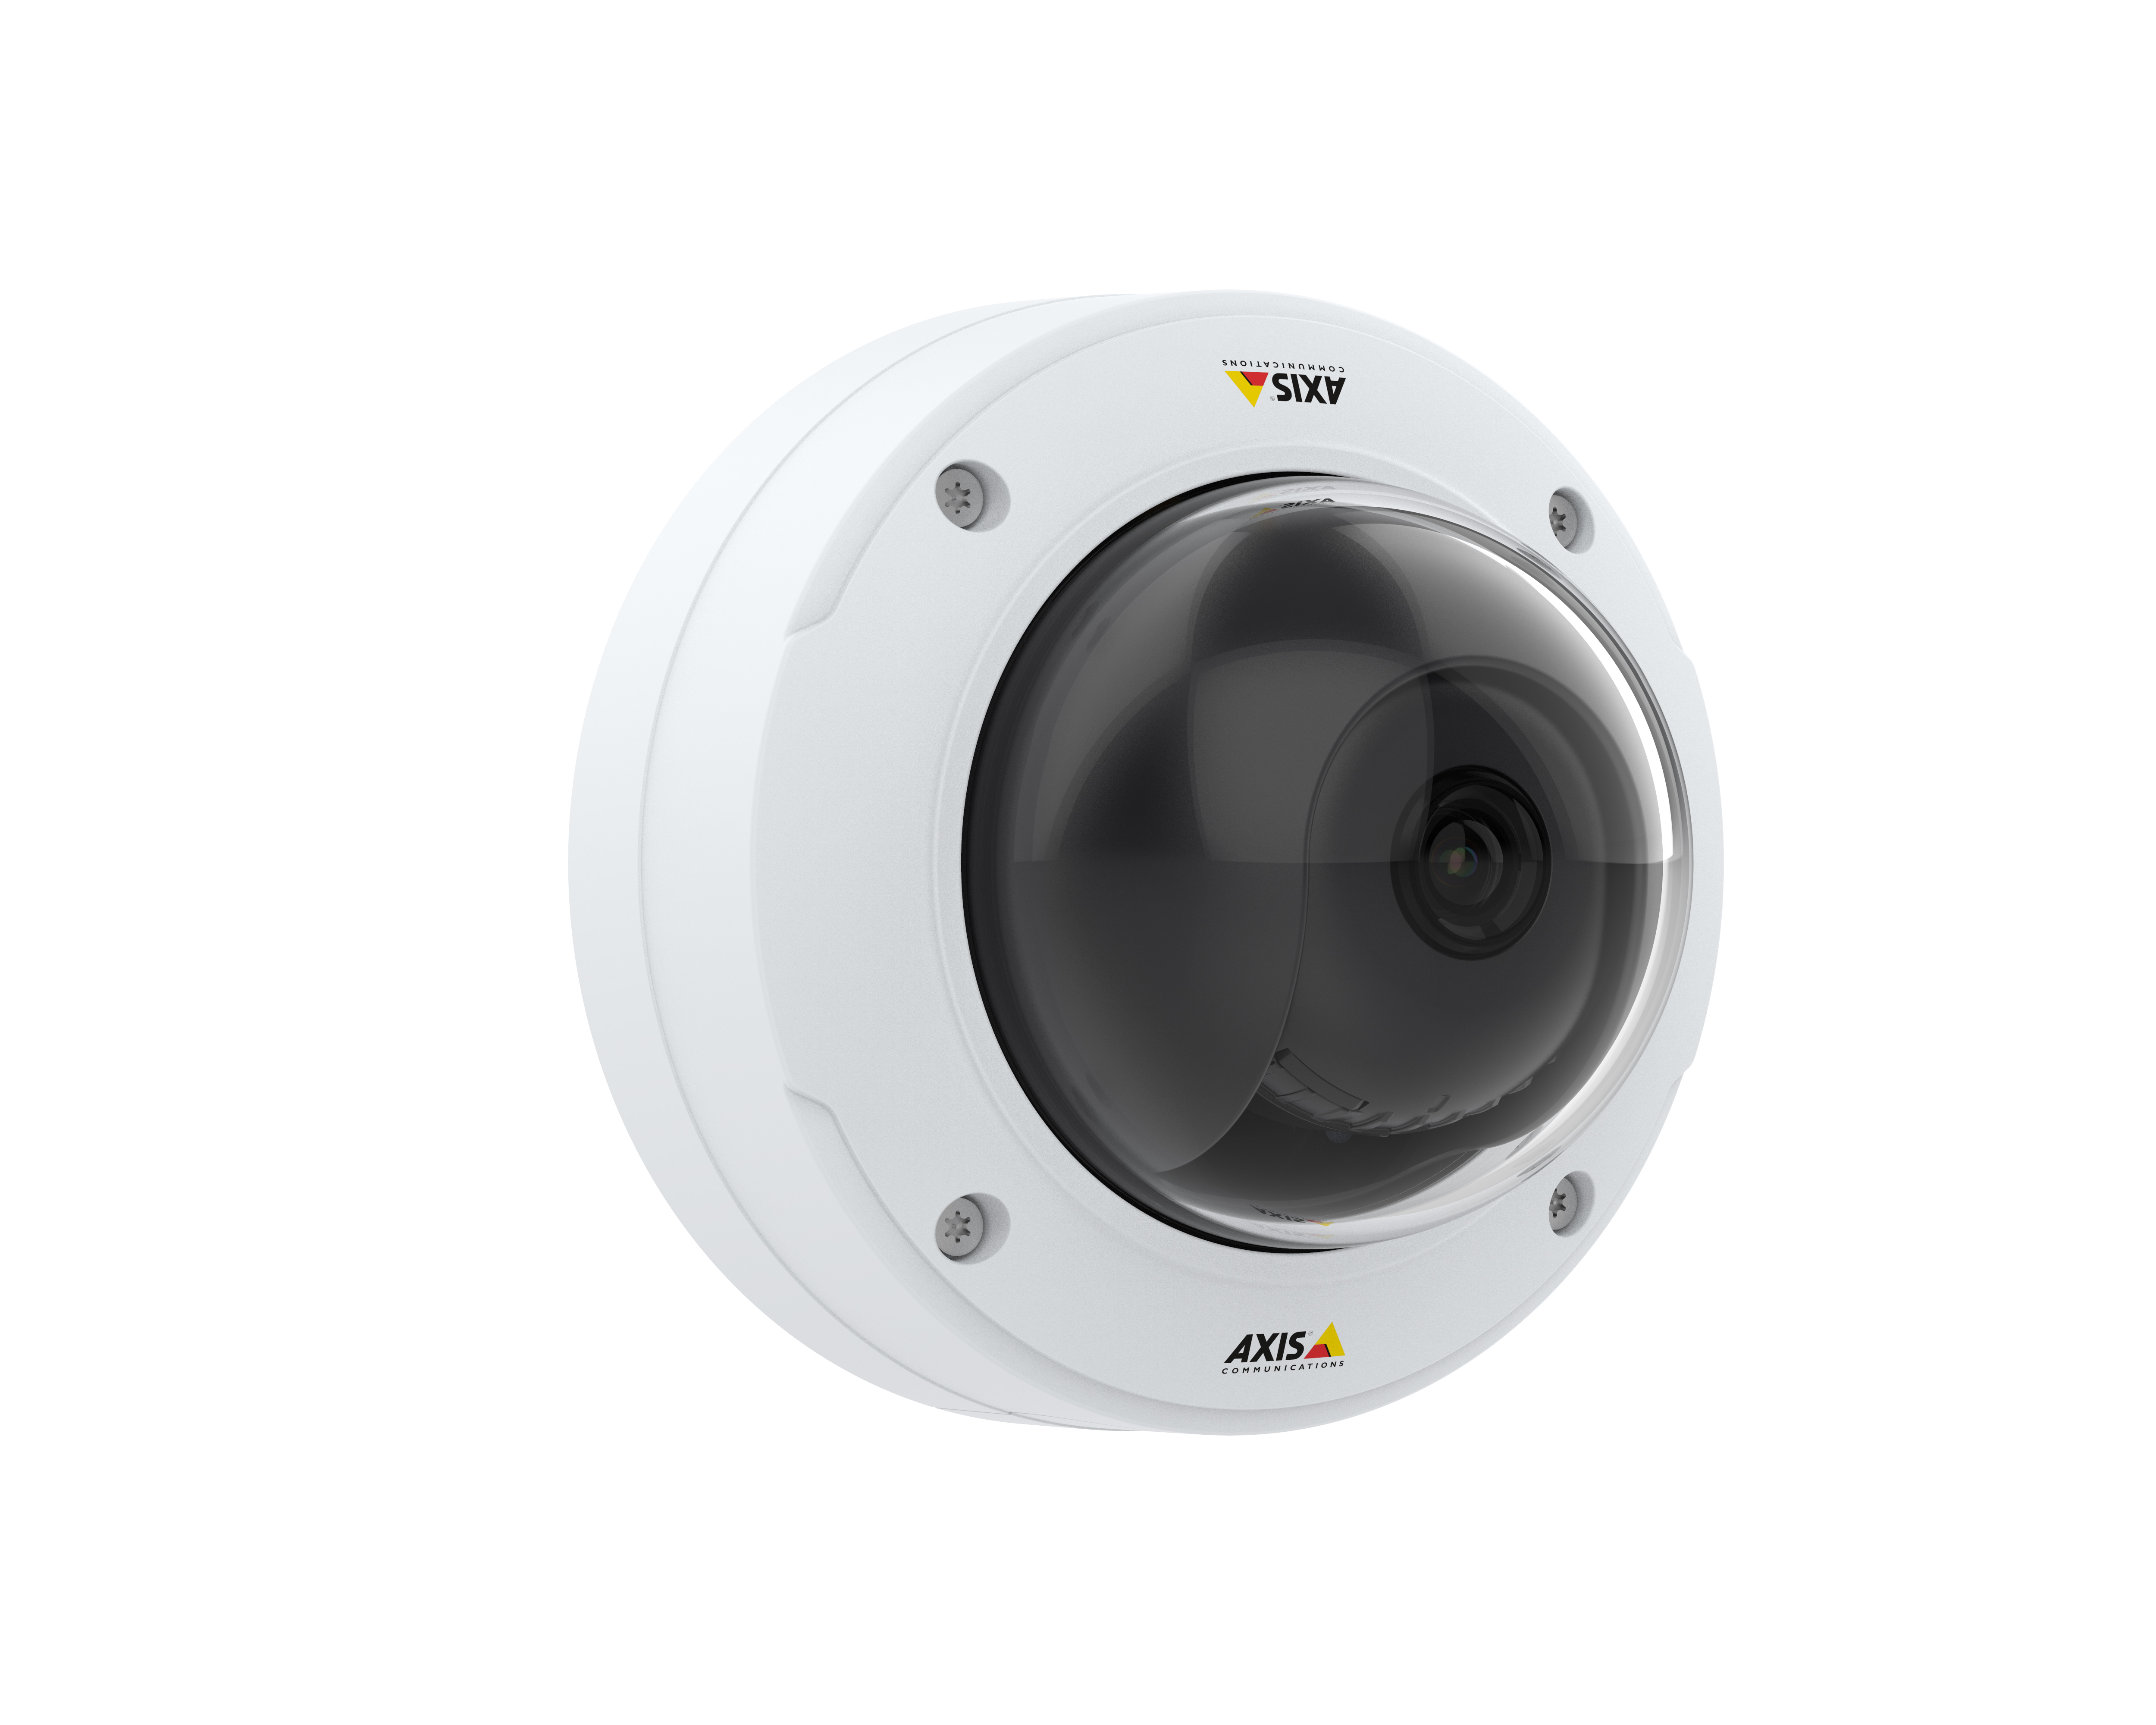 AXIS P3245-VE